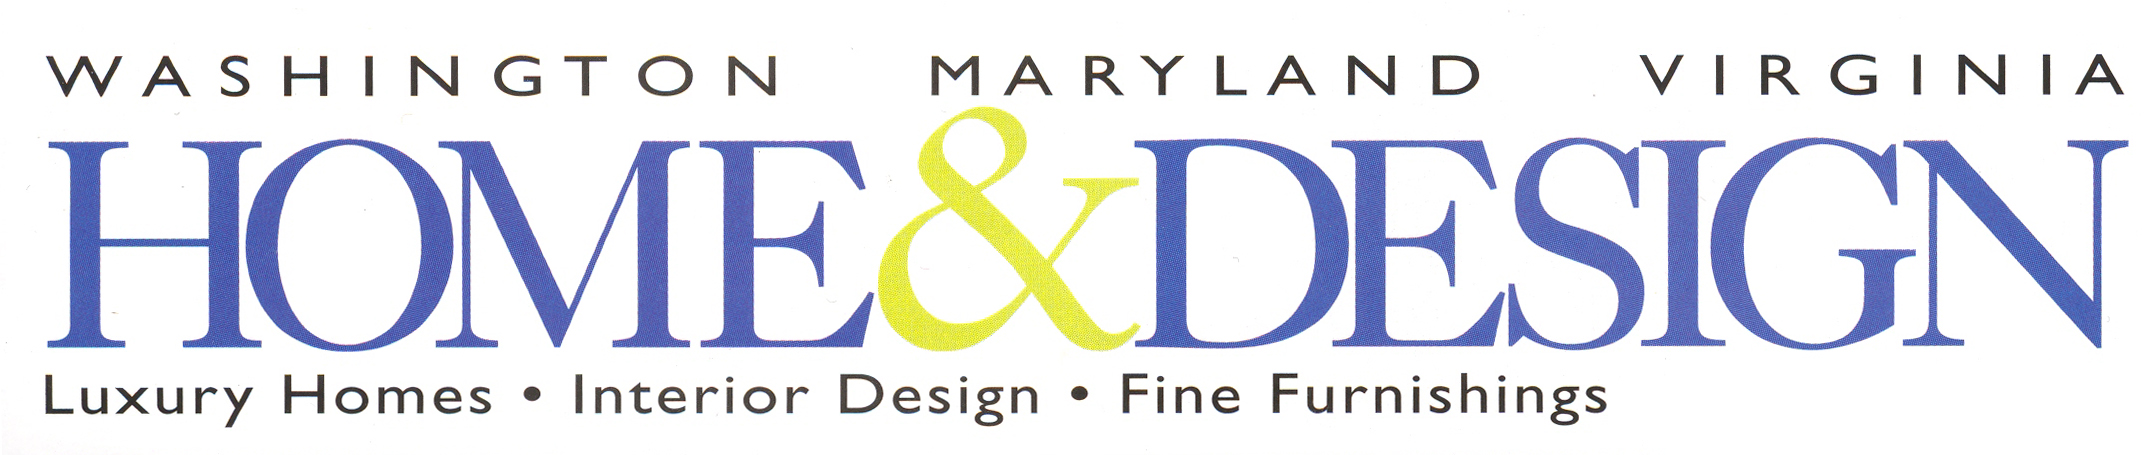 Washington Maryland Virginia Home & Design